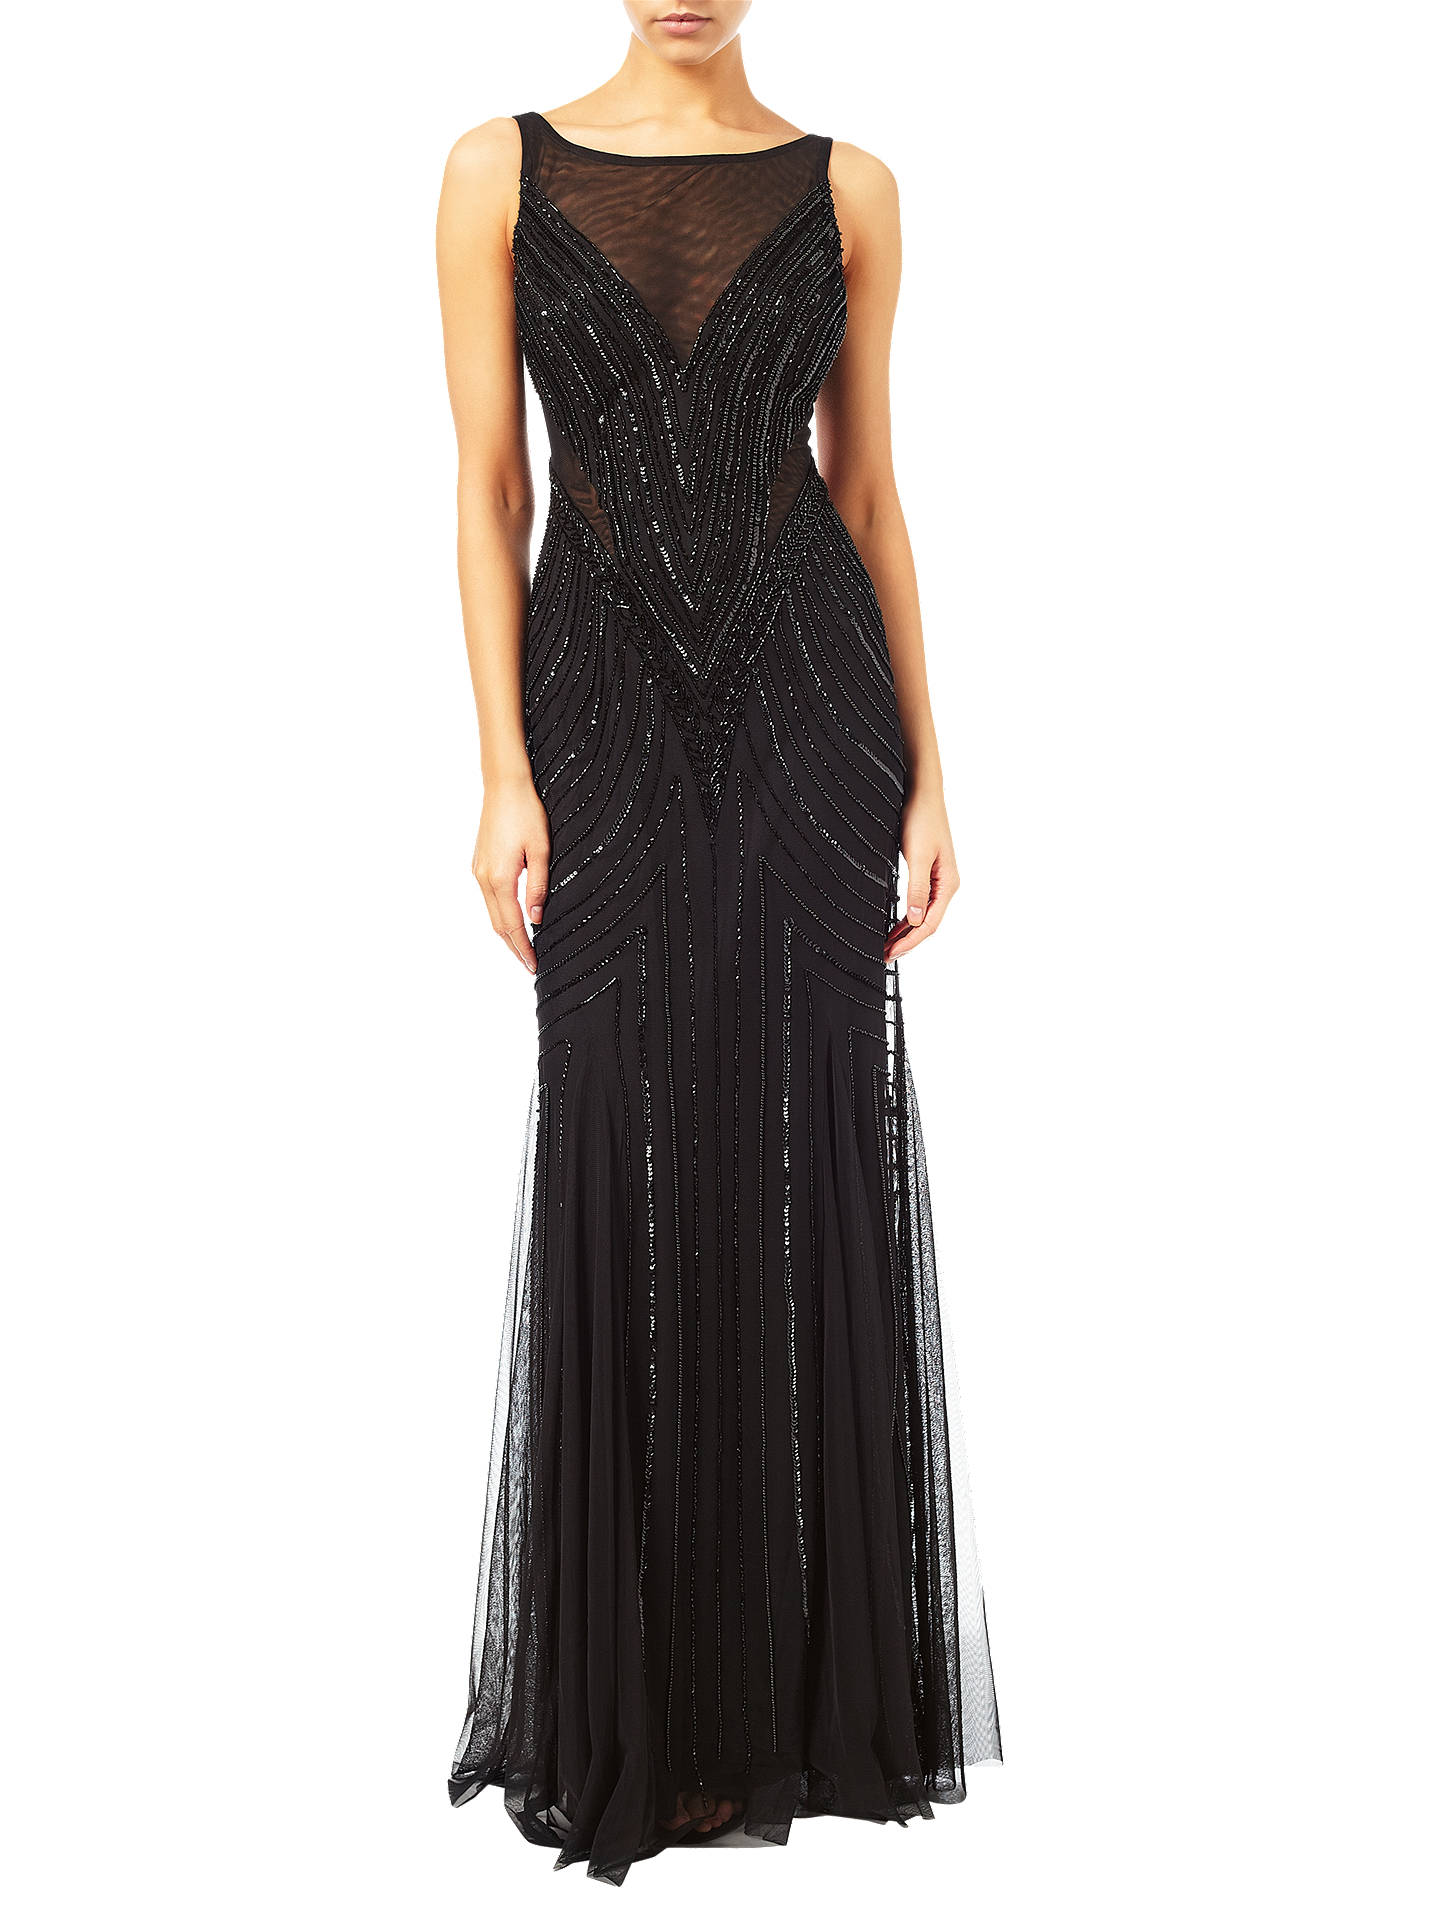 Adrianna Papell Sleeveless Beaded Mermaid Gown, Black at John Lewis ...